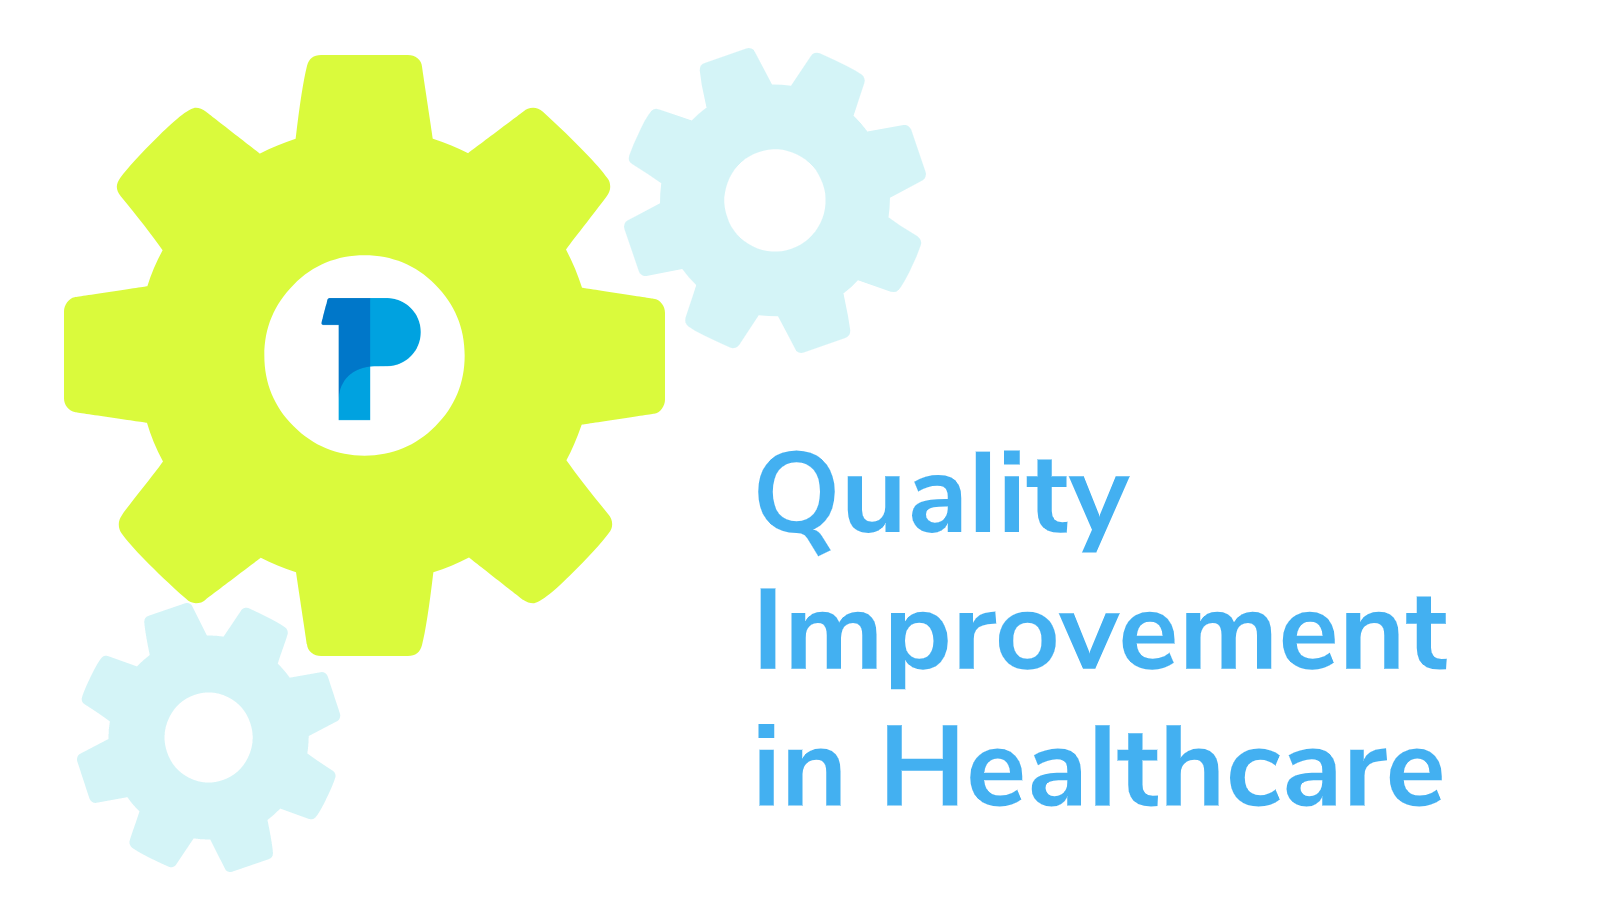 Quality Improvement in Healthcare Image connected to PatientOne